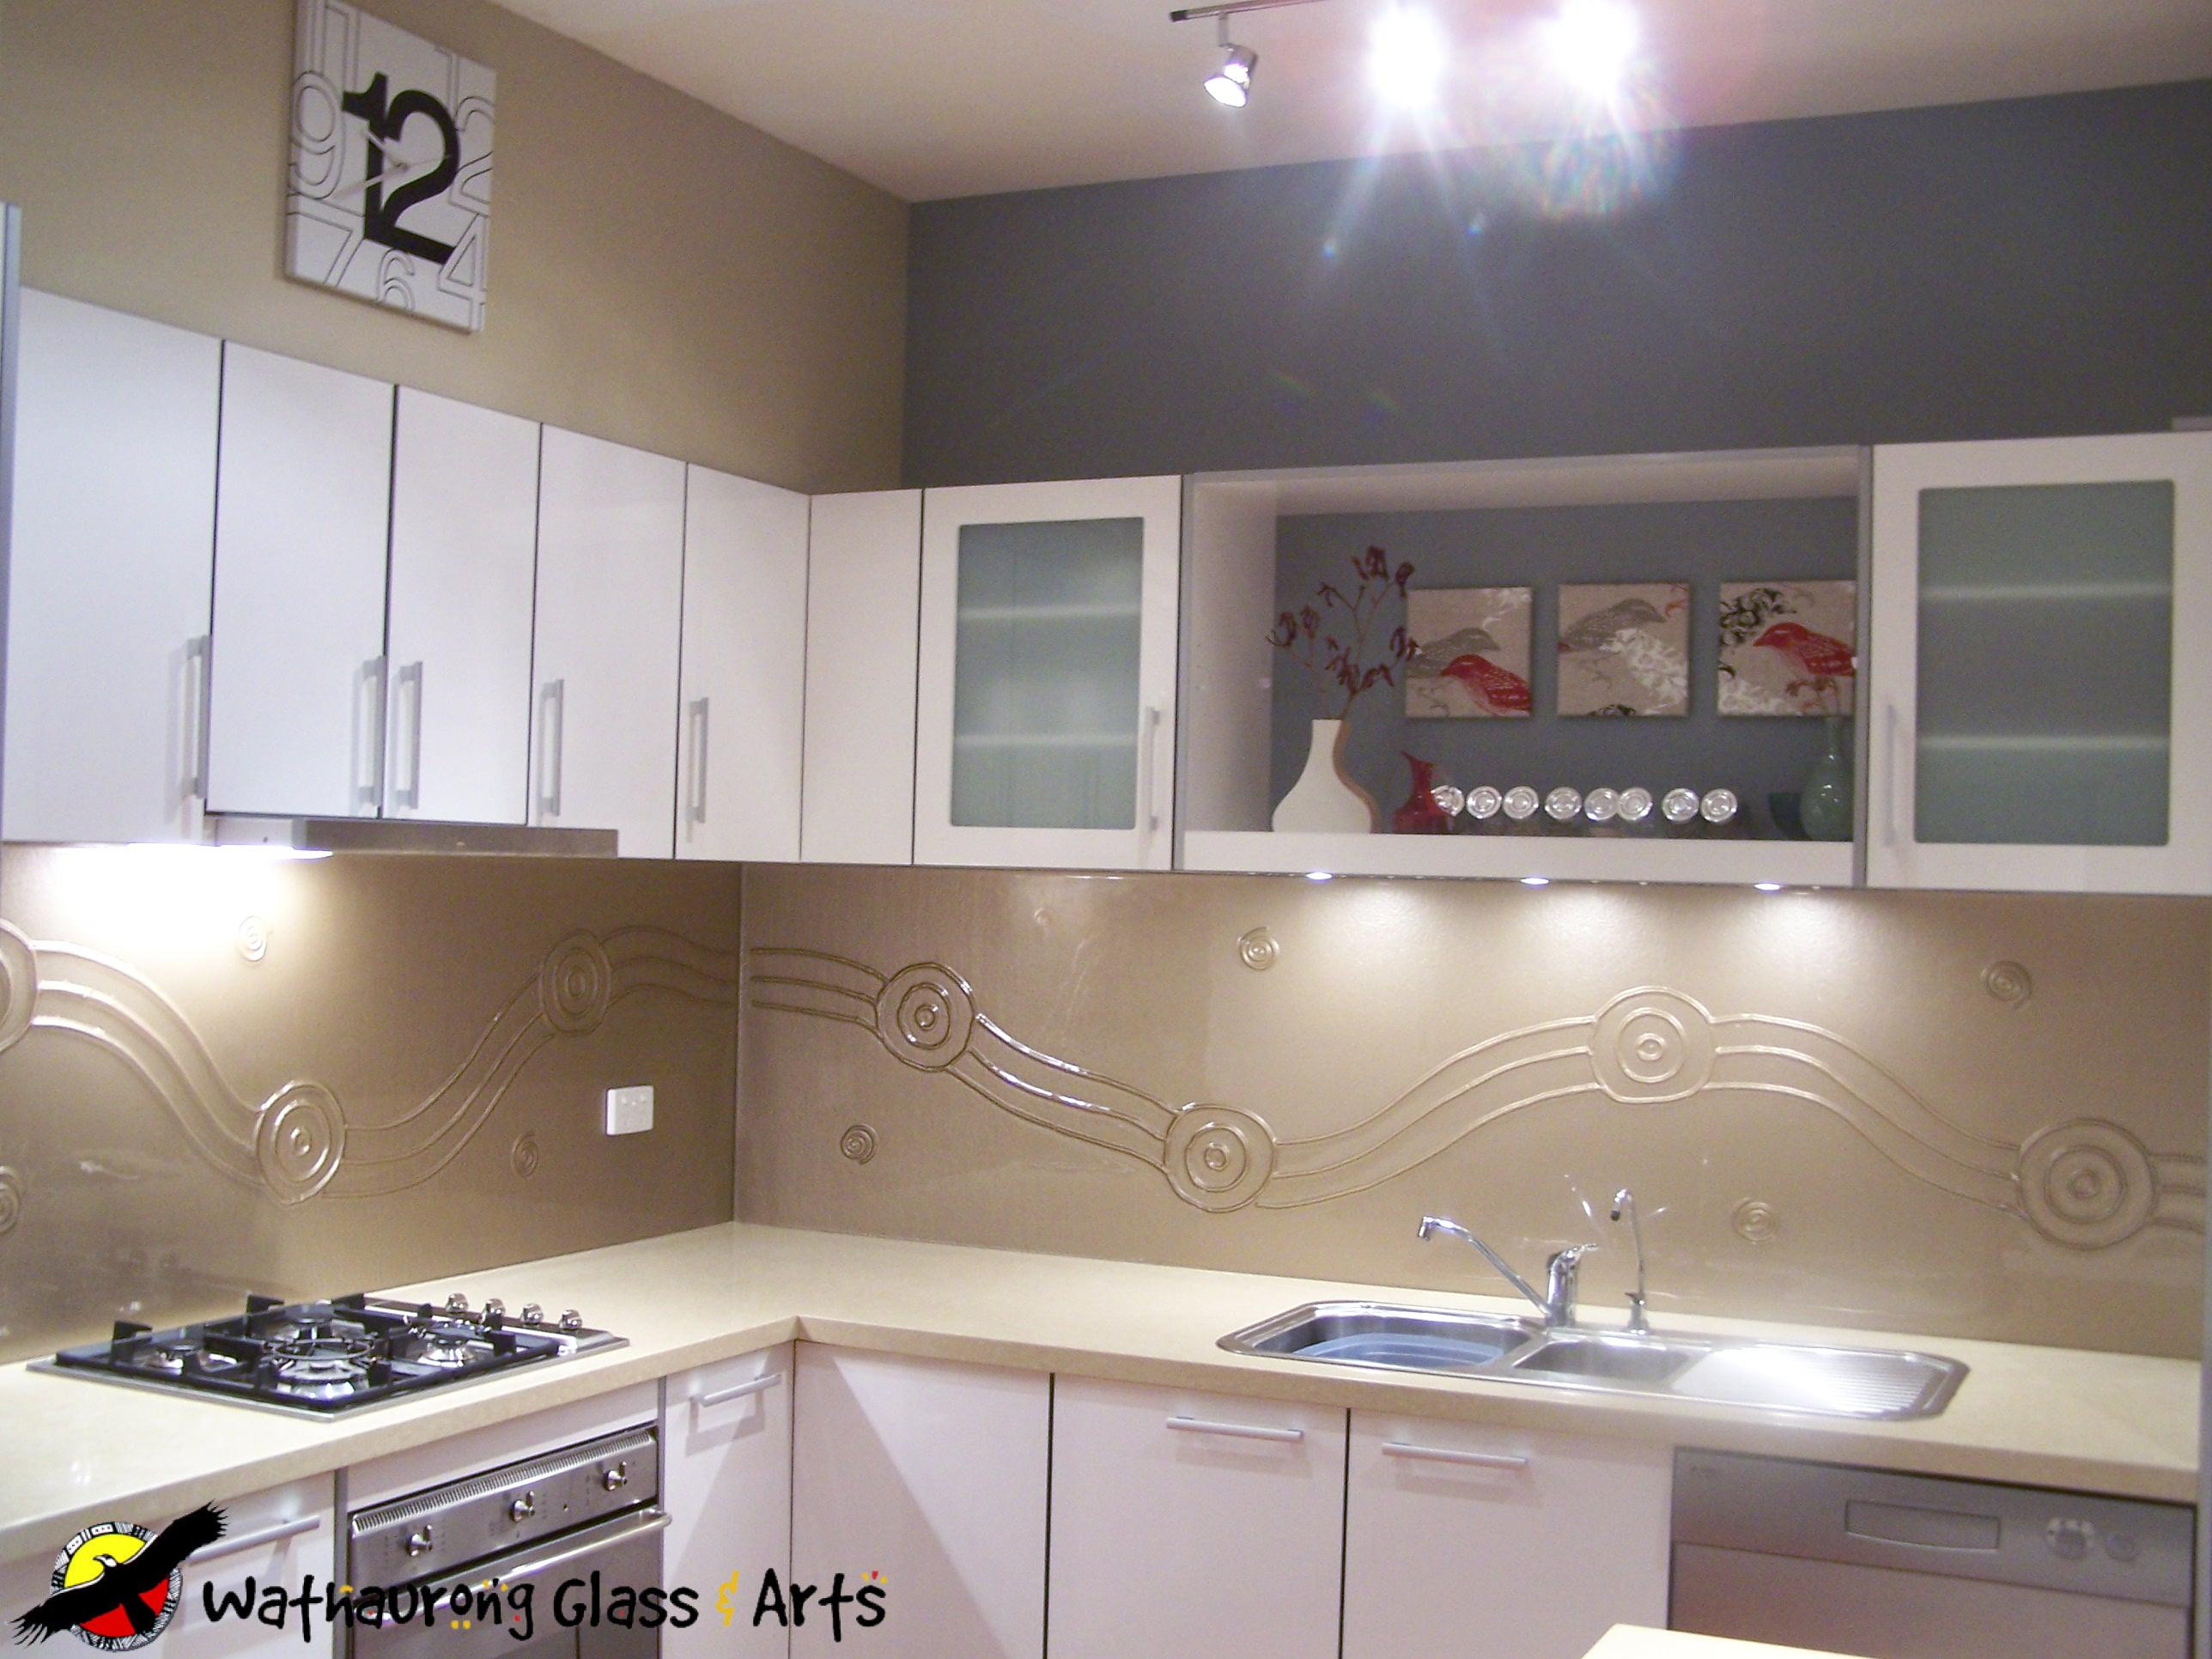 Design Ideas Kitchen Splashbacks ~ Geelong kitchen splashback wathaurong glass